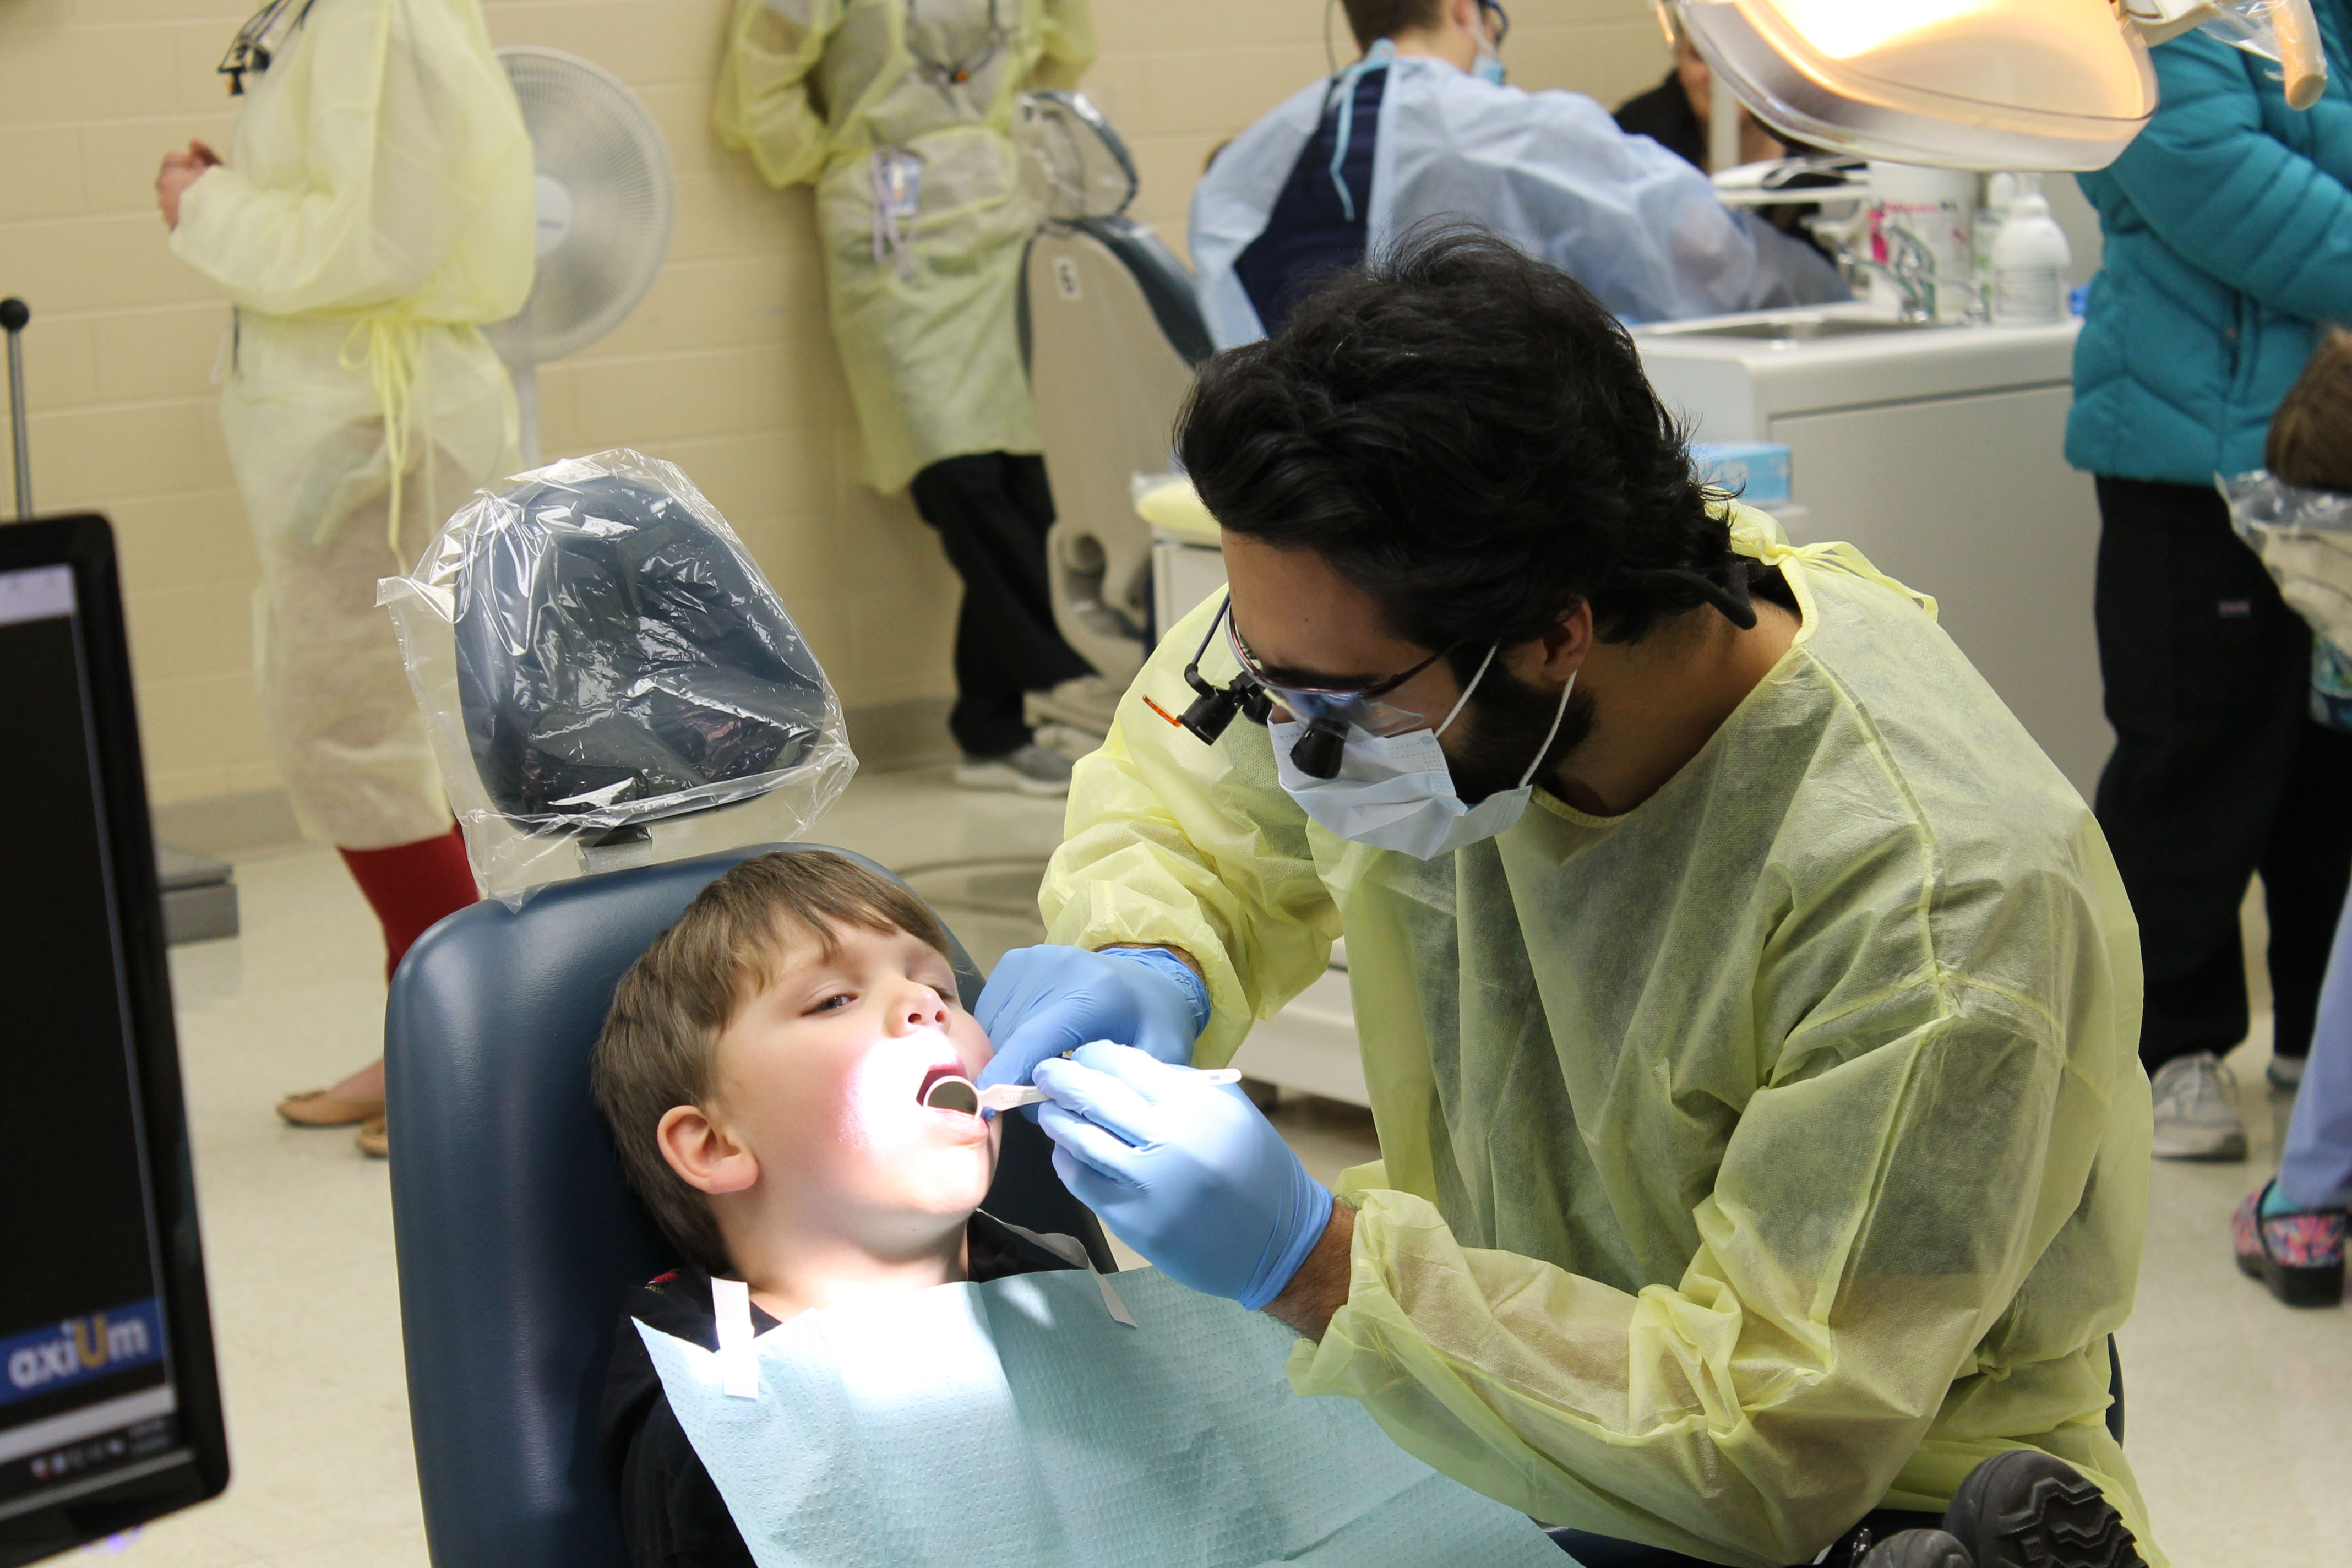 STORY PITCH: WVU Dentistry offers free children's dental